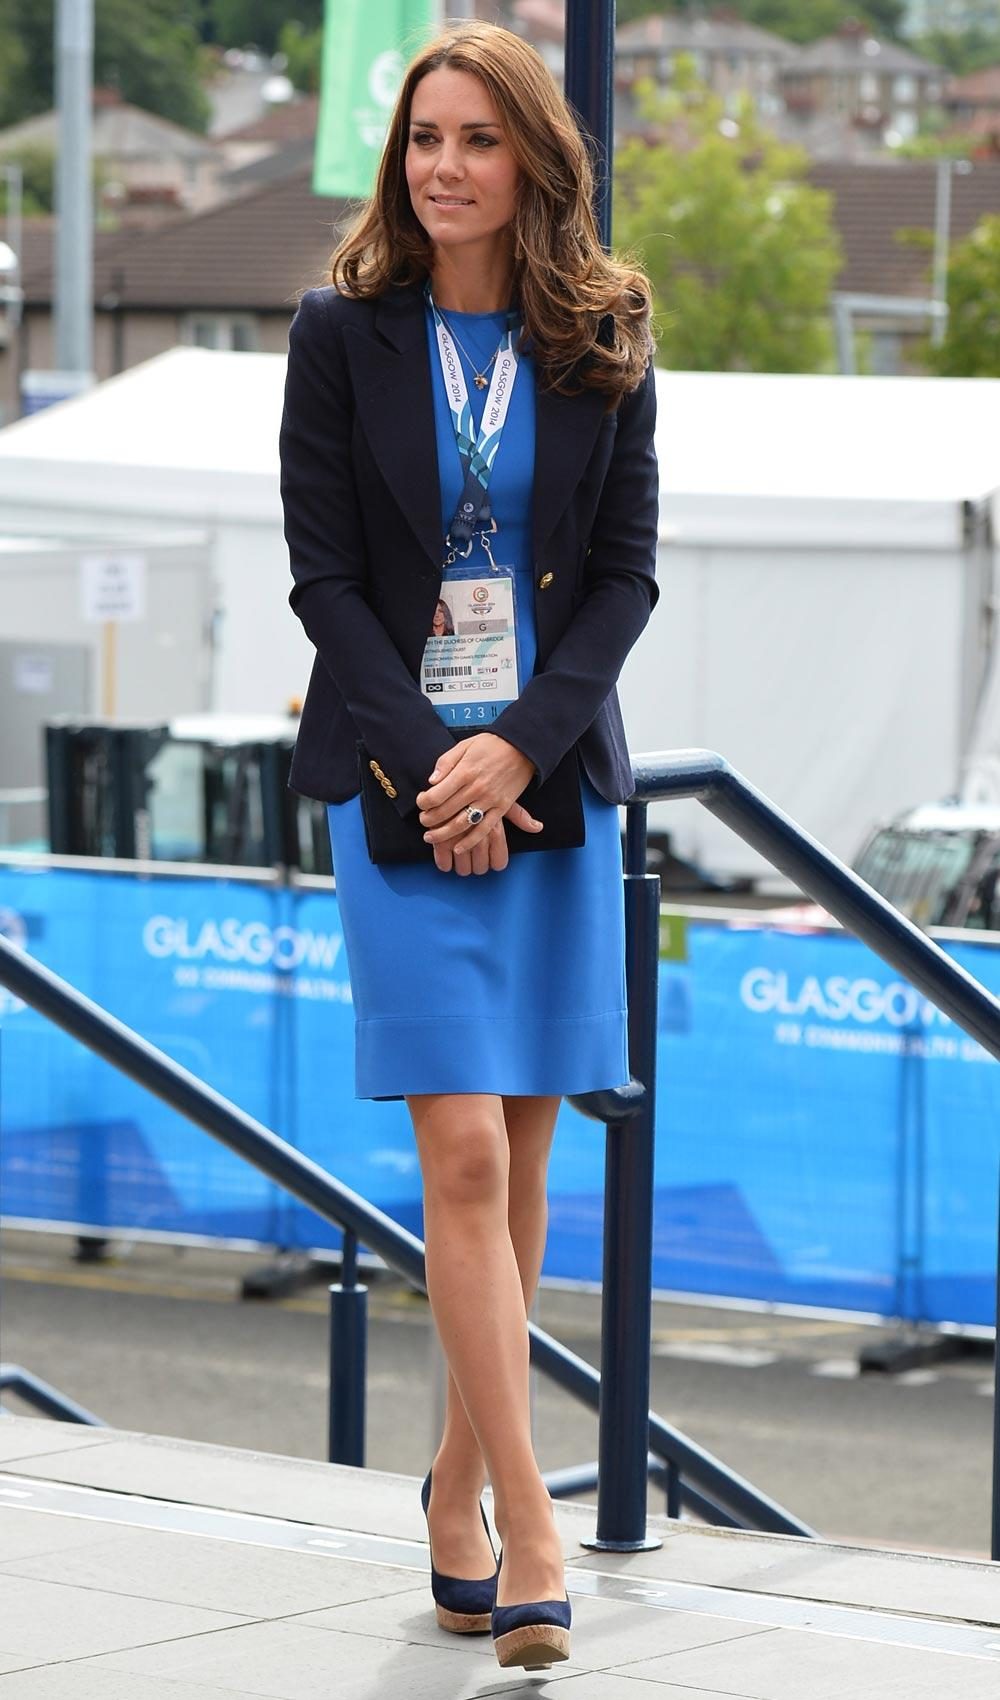 The Duchess of Cambridge was striking in blue @StellaMcCartney at the Commonwealth Games today http://t.co/BwgHDt06FA http://t.co/FoqCLFvR5H